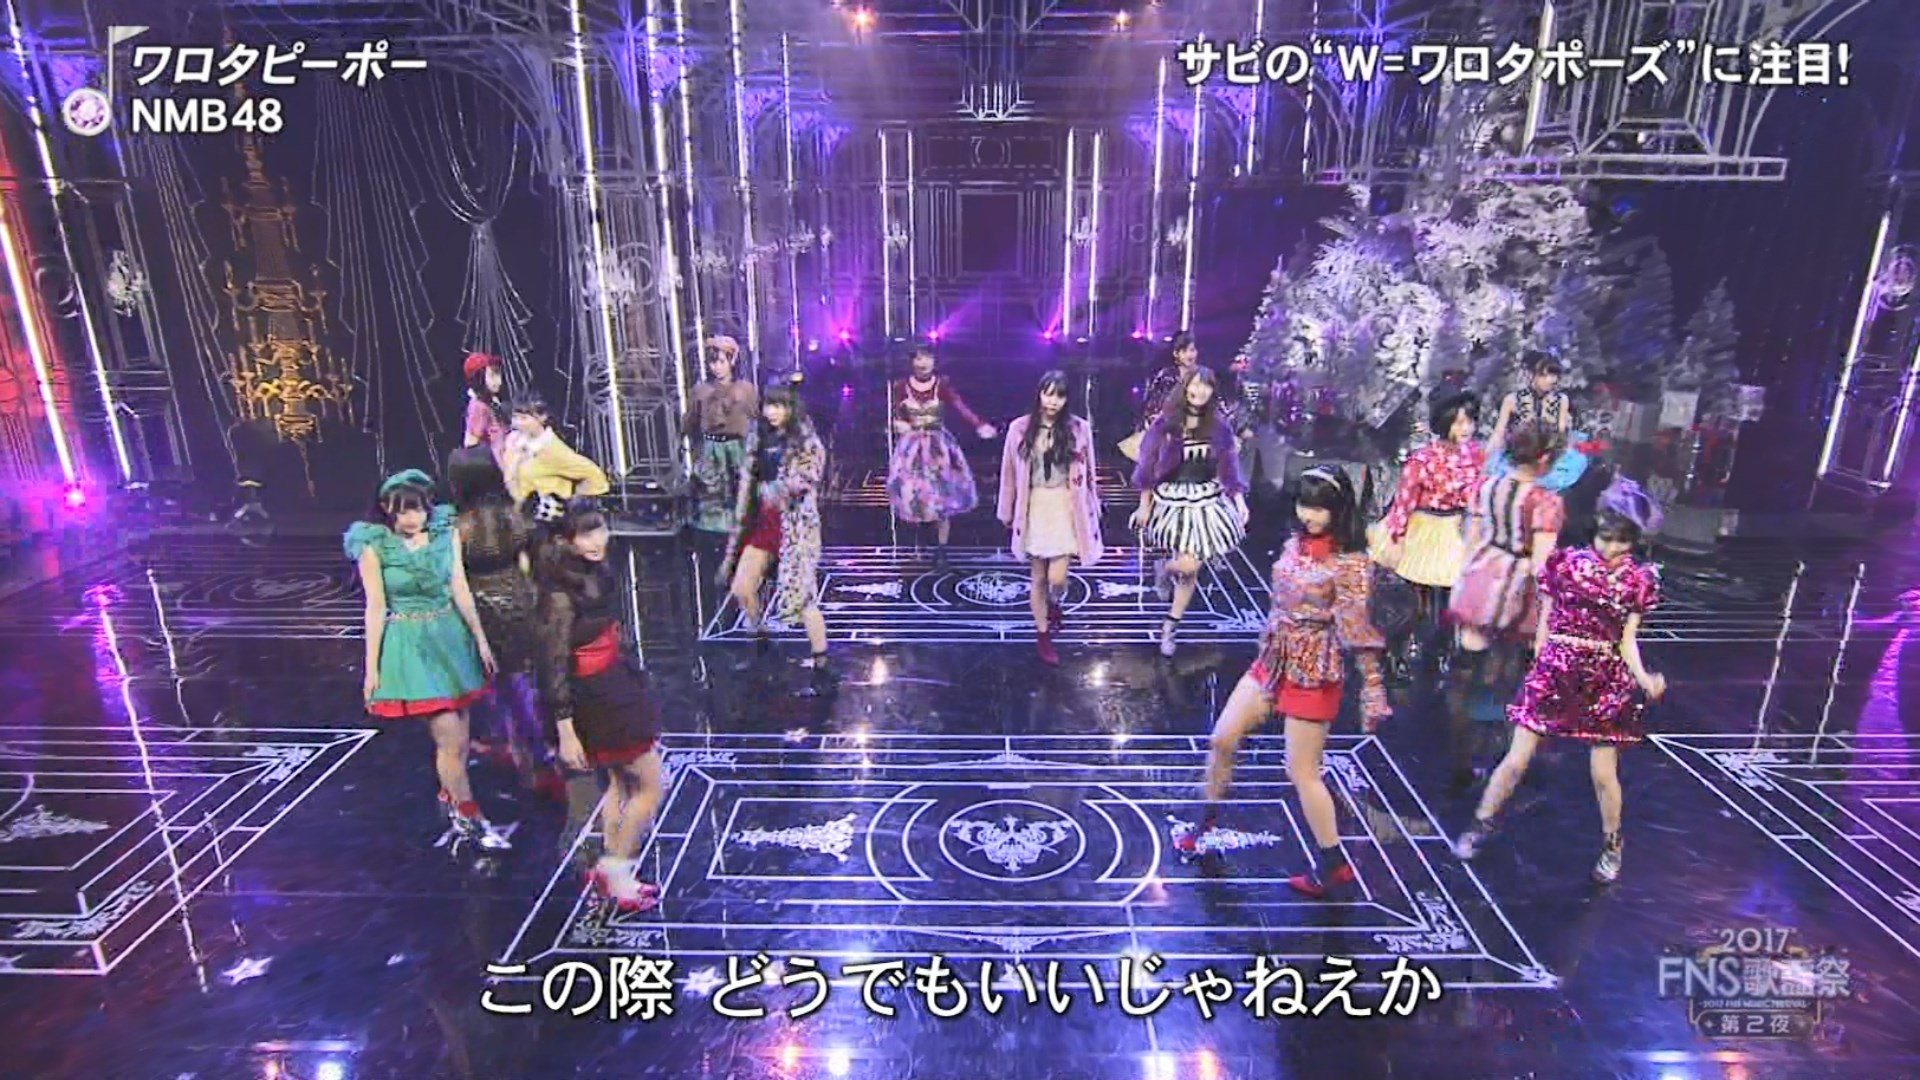 2017FNS歌謡祭第2夜・NMB48ワロタピーポーキャプ画像037